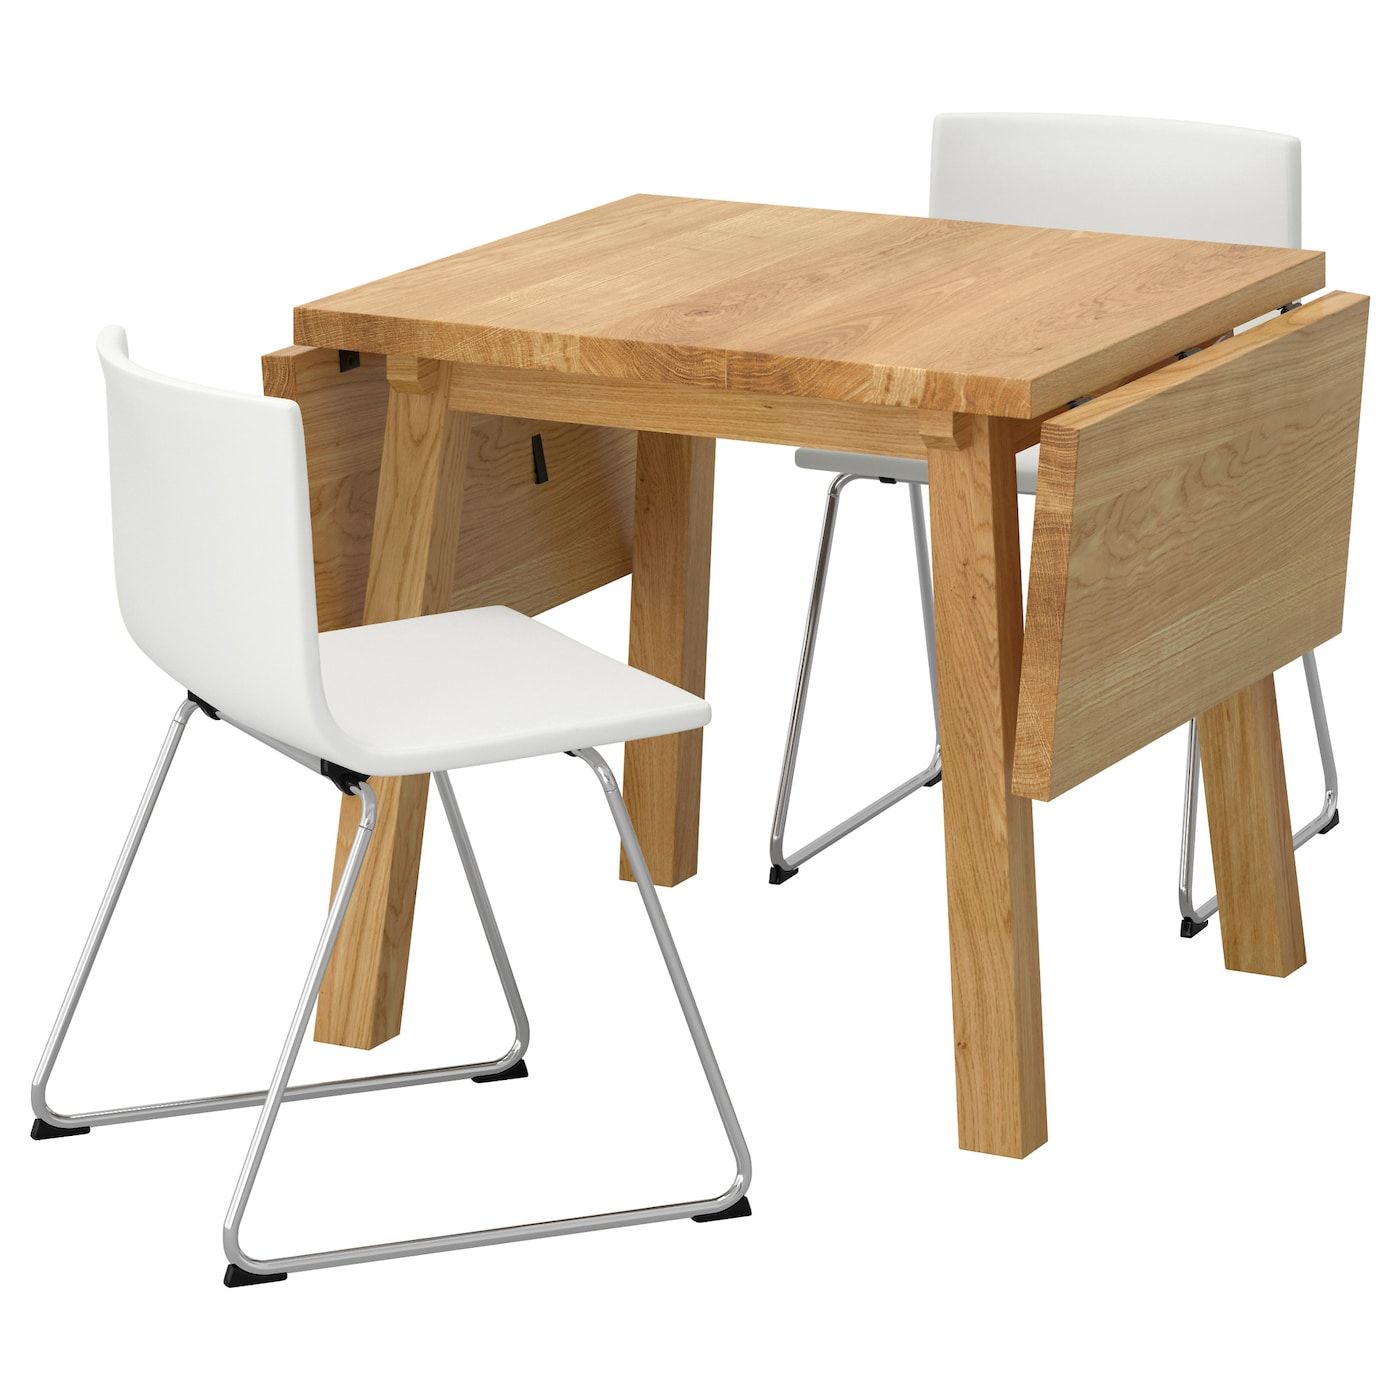 IKEA BERNHARD/MÖCKELBY table and 2 chairs